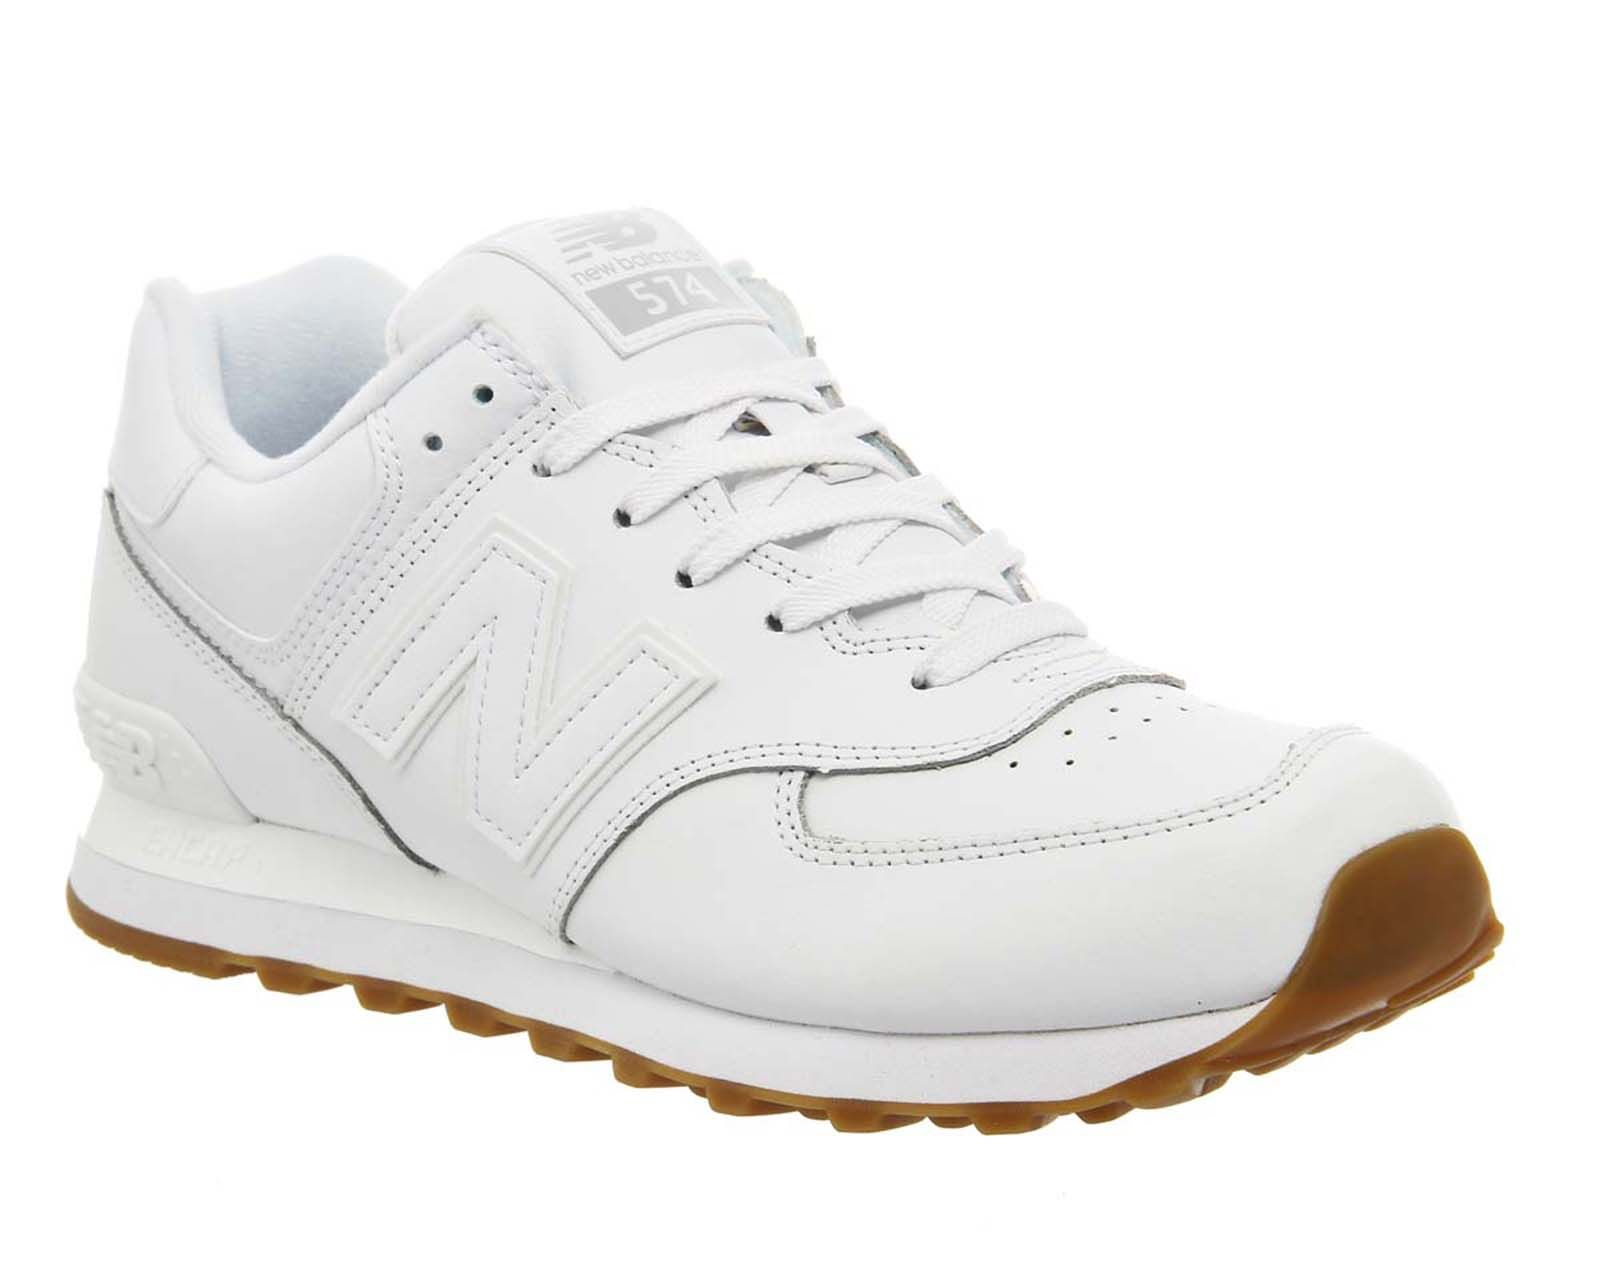 New Balance M574 White leather shoes, Retro shoes, Leather